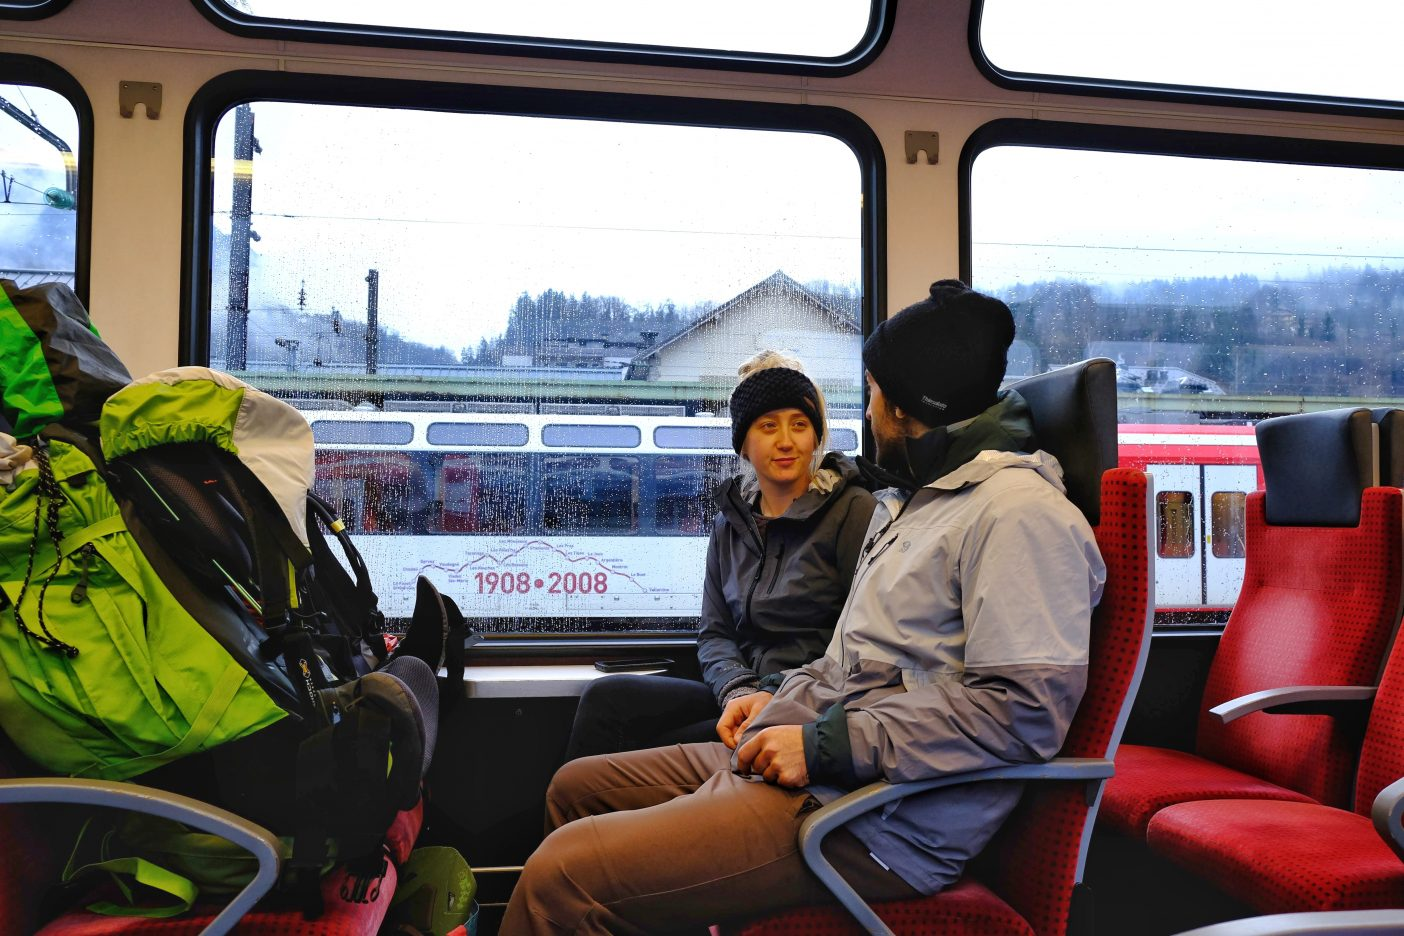 Backpacking couple travelling by train